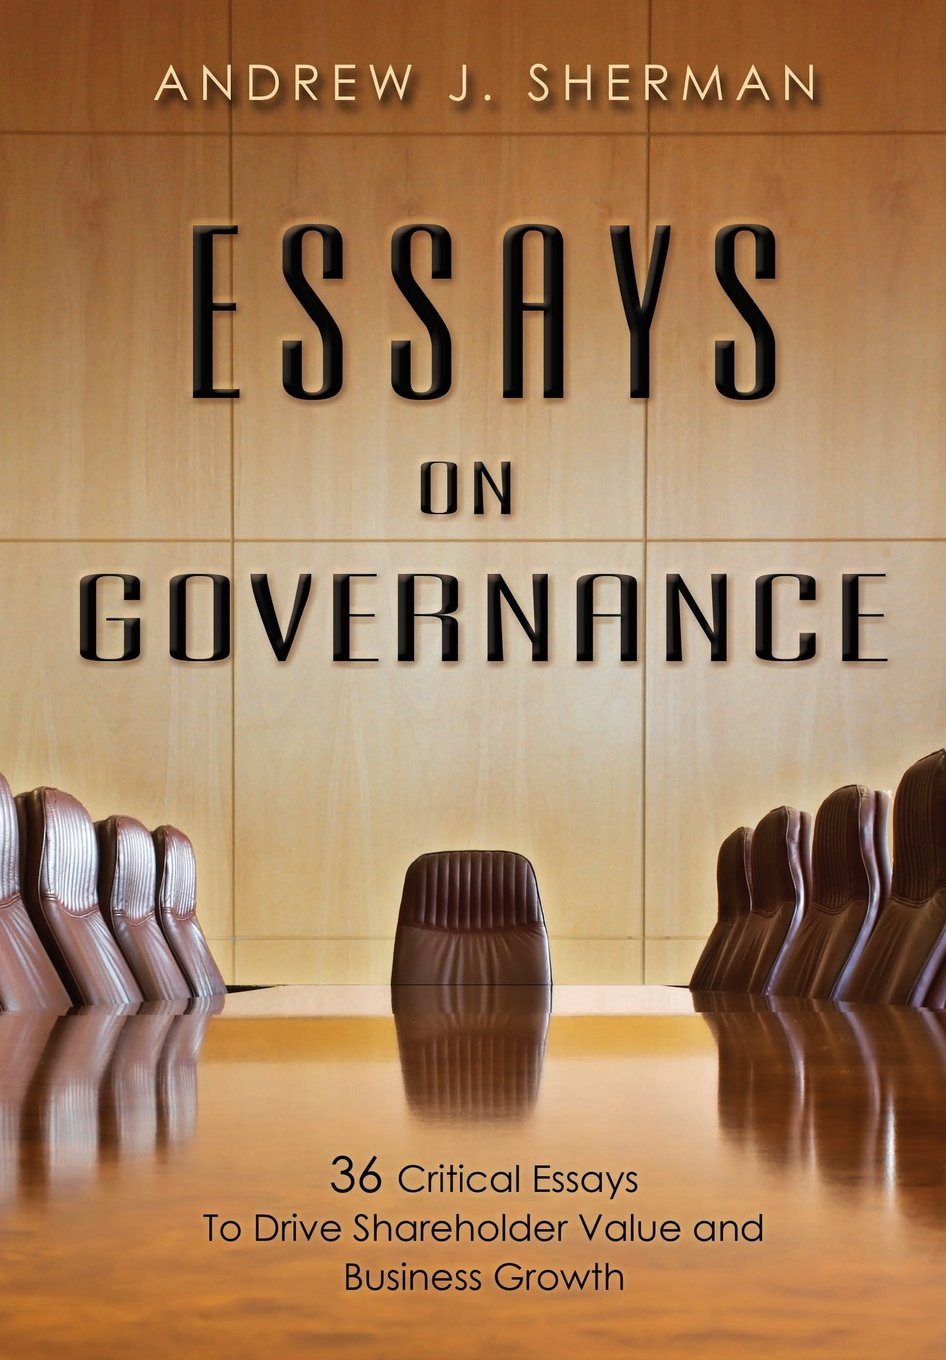 com essays on governance 36 critical essays to drive  com essays on governance 36 critical essays to drive shareholder value and business growth 9781599323336 andrew j sherman books